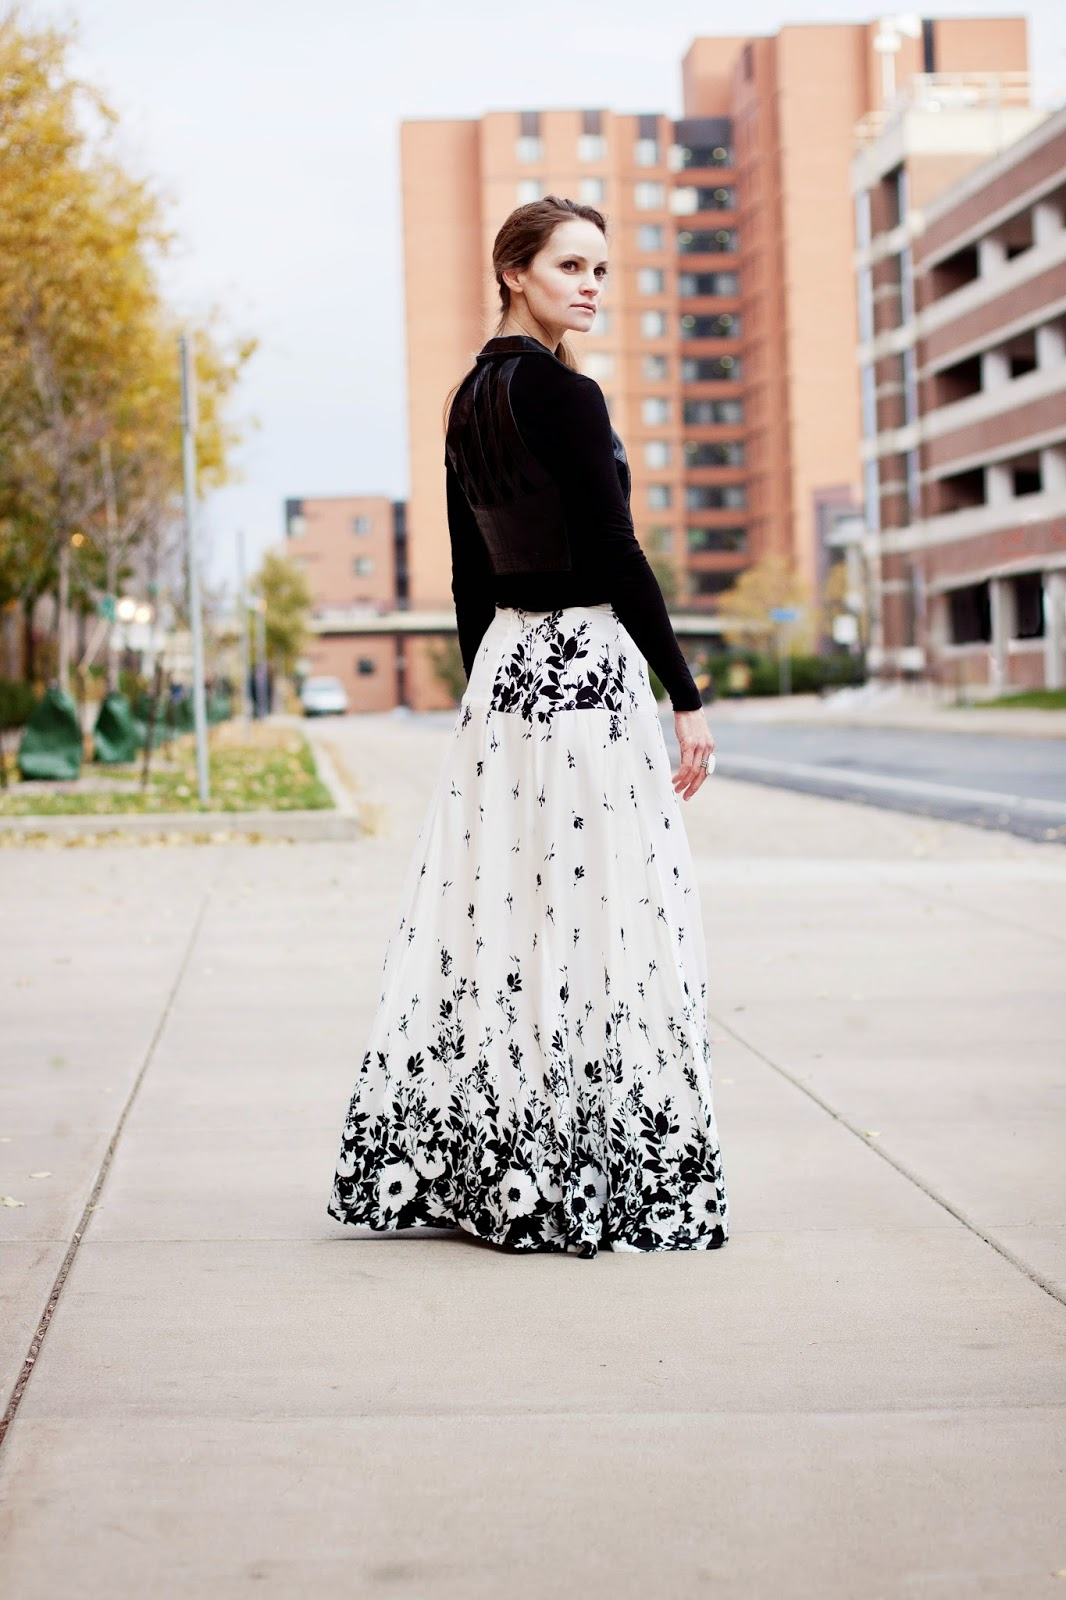 Mode-sty | modest maxi skirt full floor length muslim hijab tznius jewish mormon lds christian pentecostal stylish fashion islamic